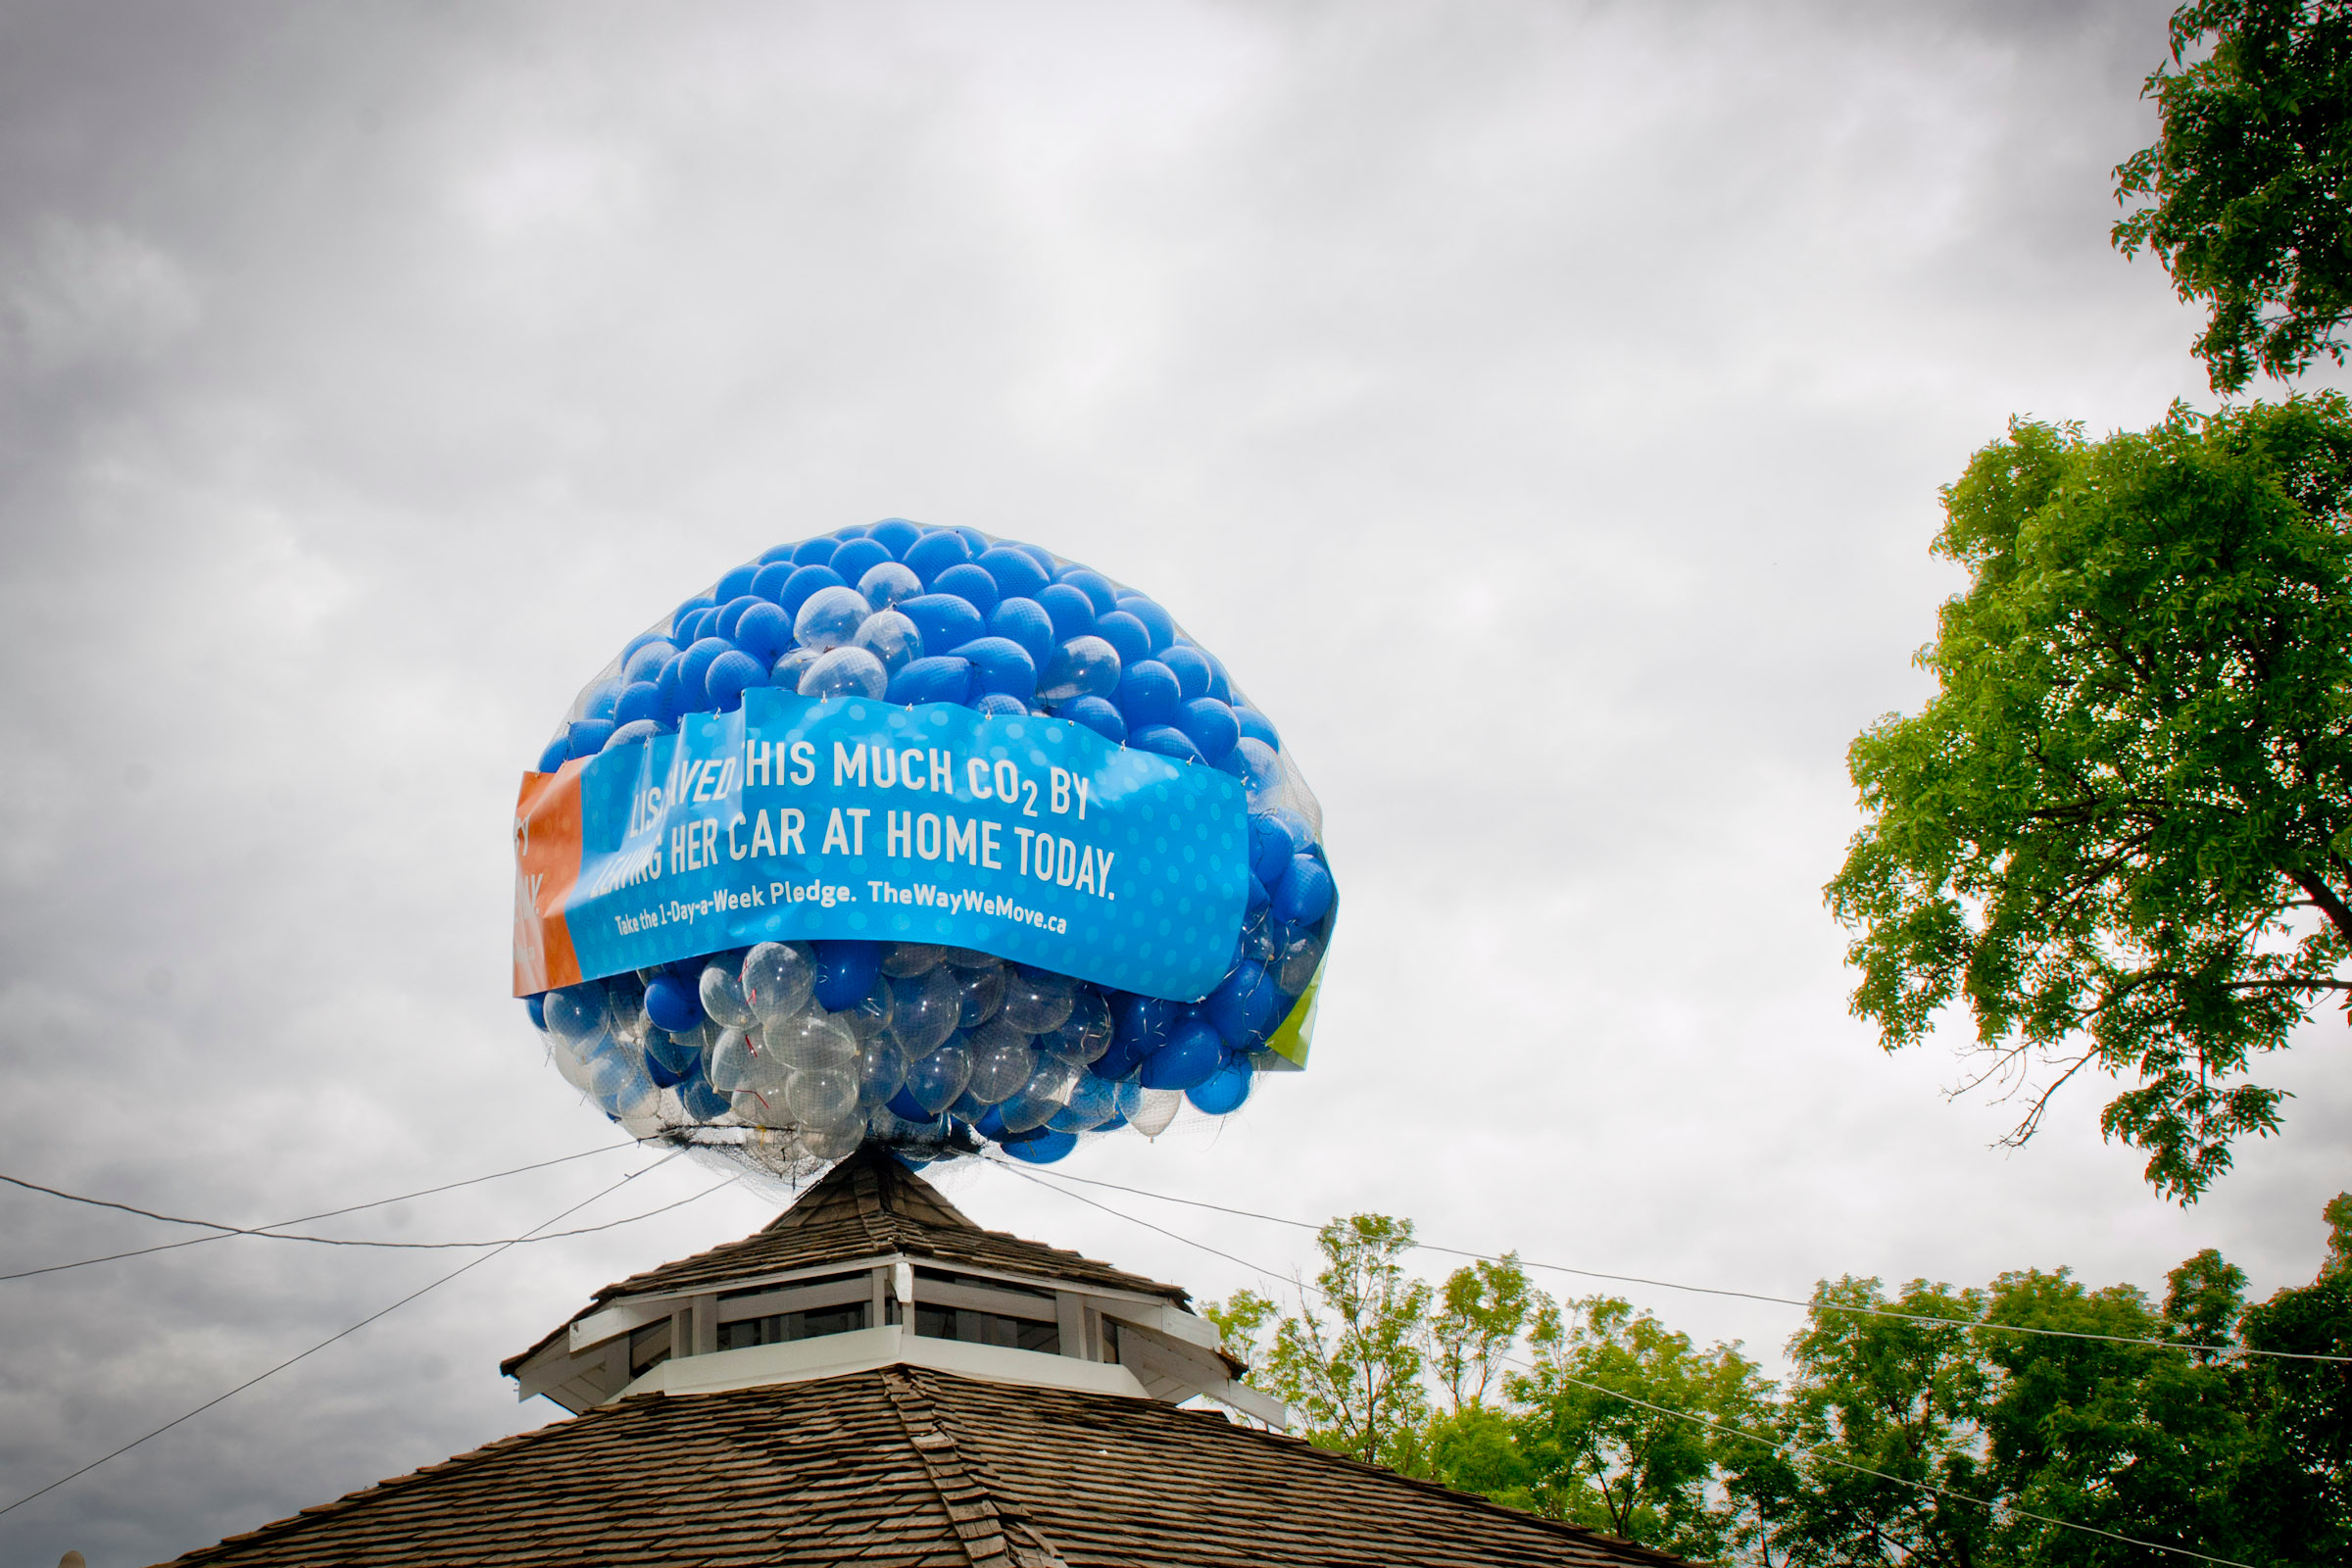 1-Day-a-Week Pledge Campaign Takes Off with Balloon Installation